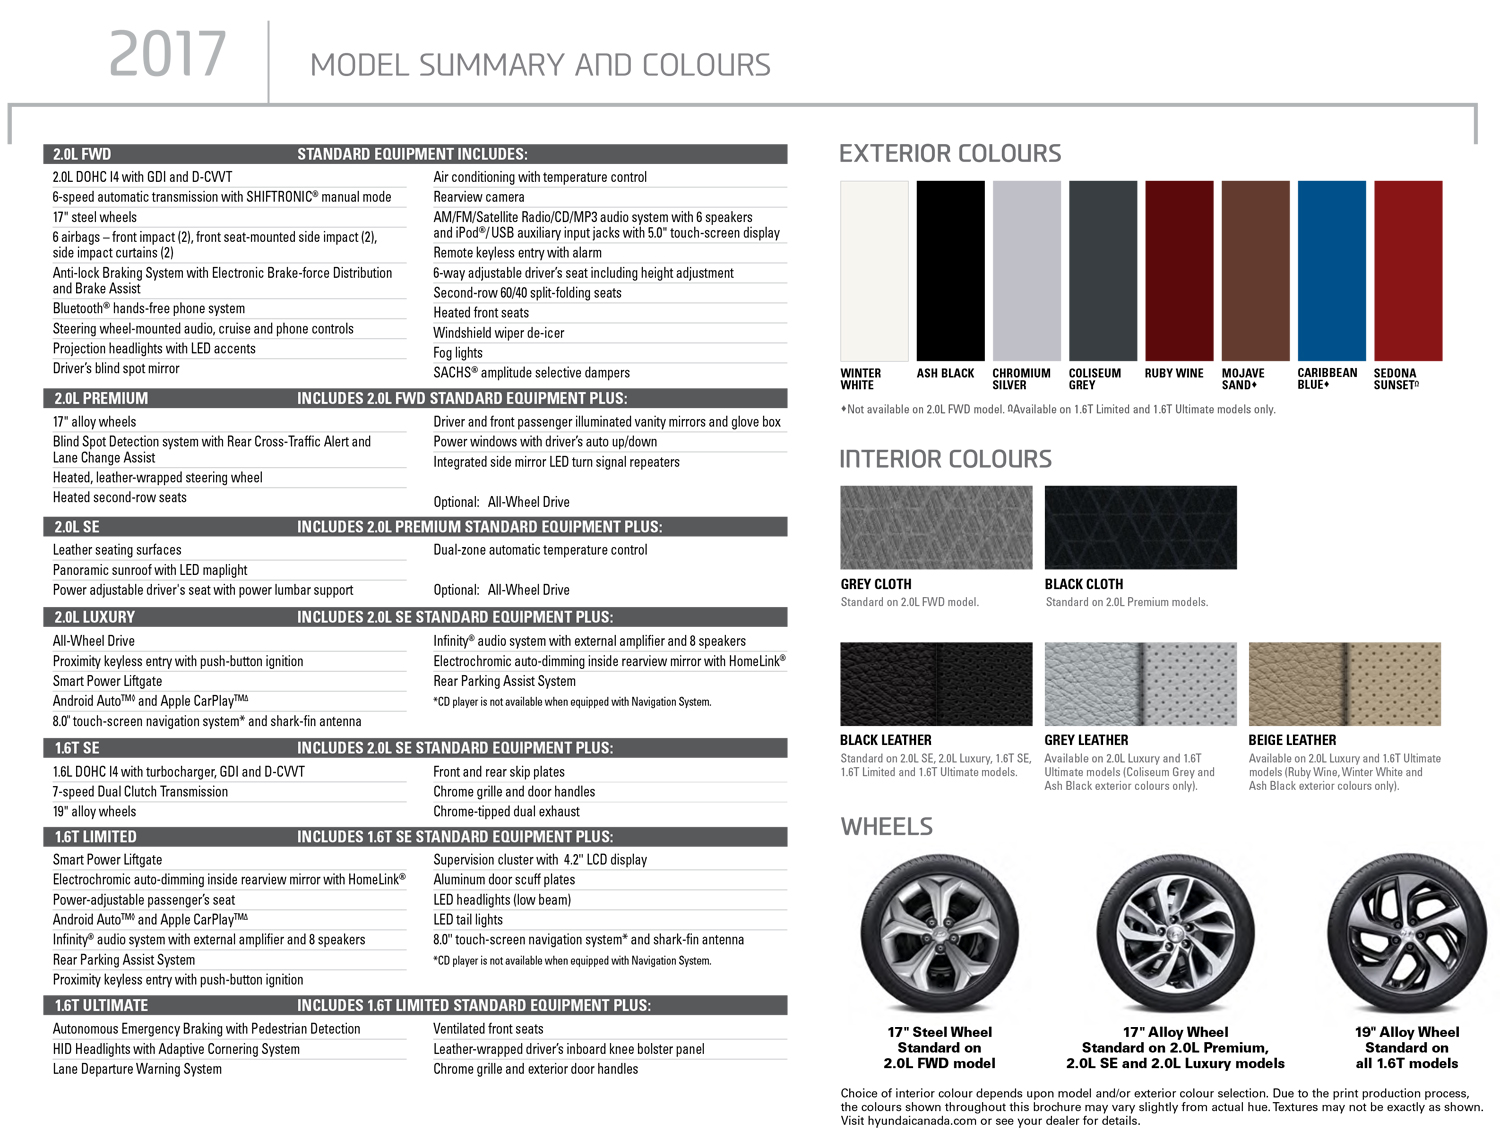 Hyundai Tucson model summary and colours in London